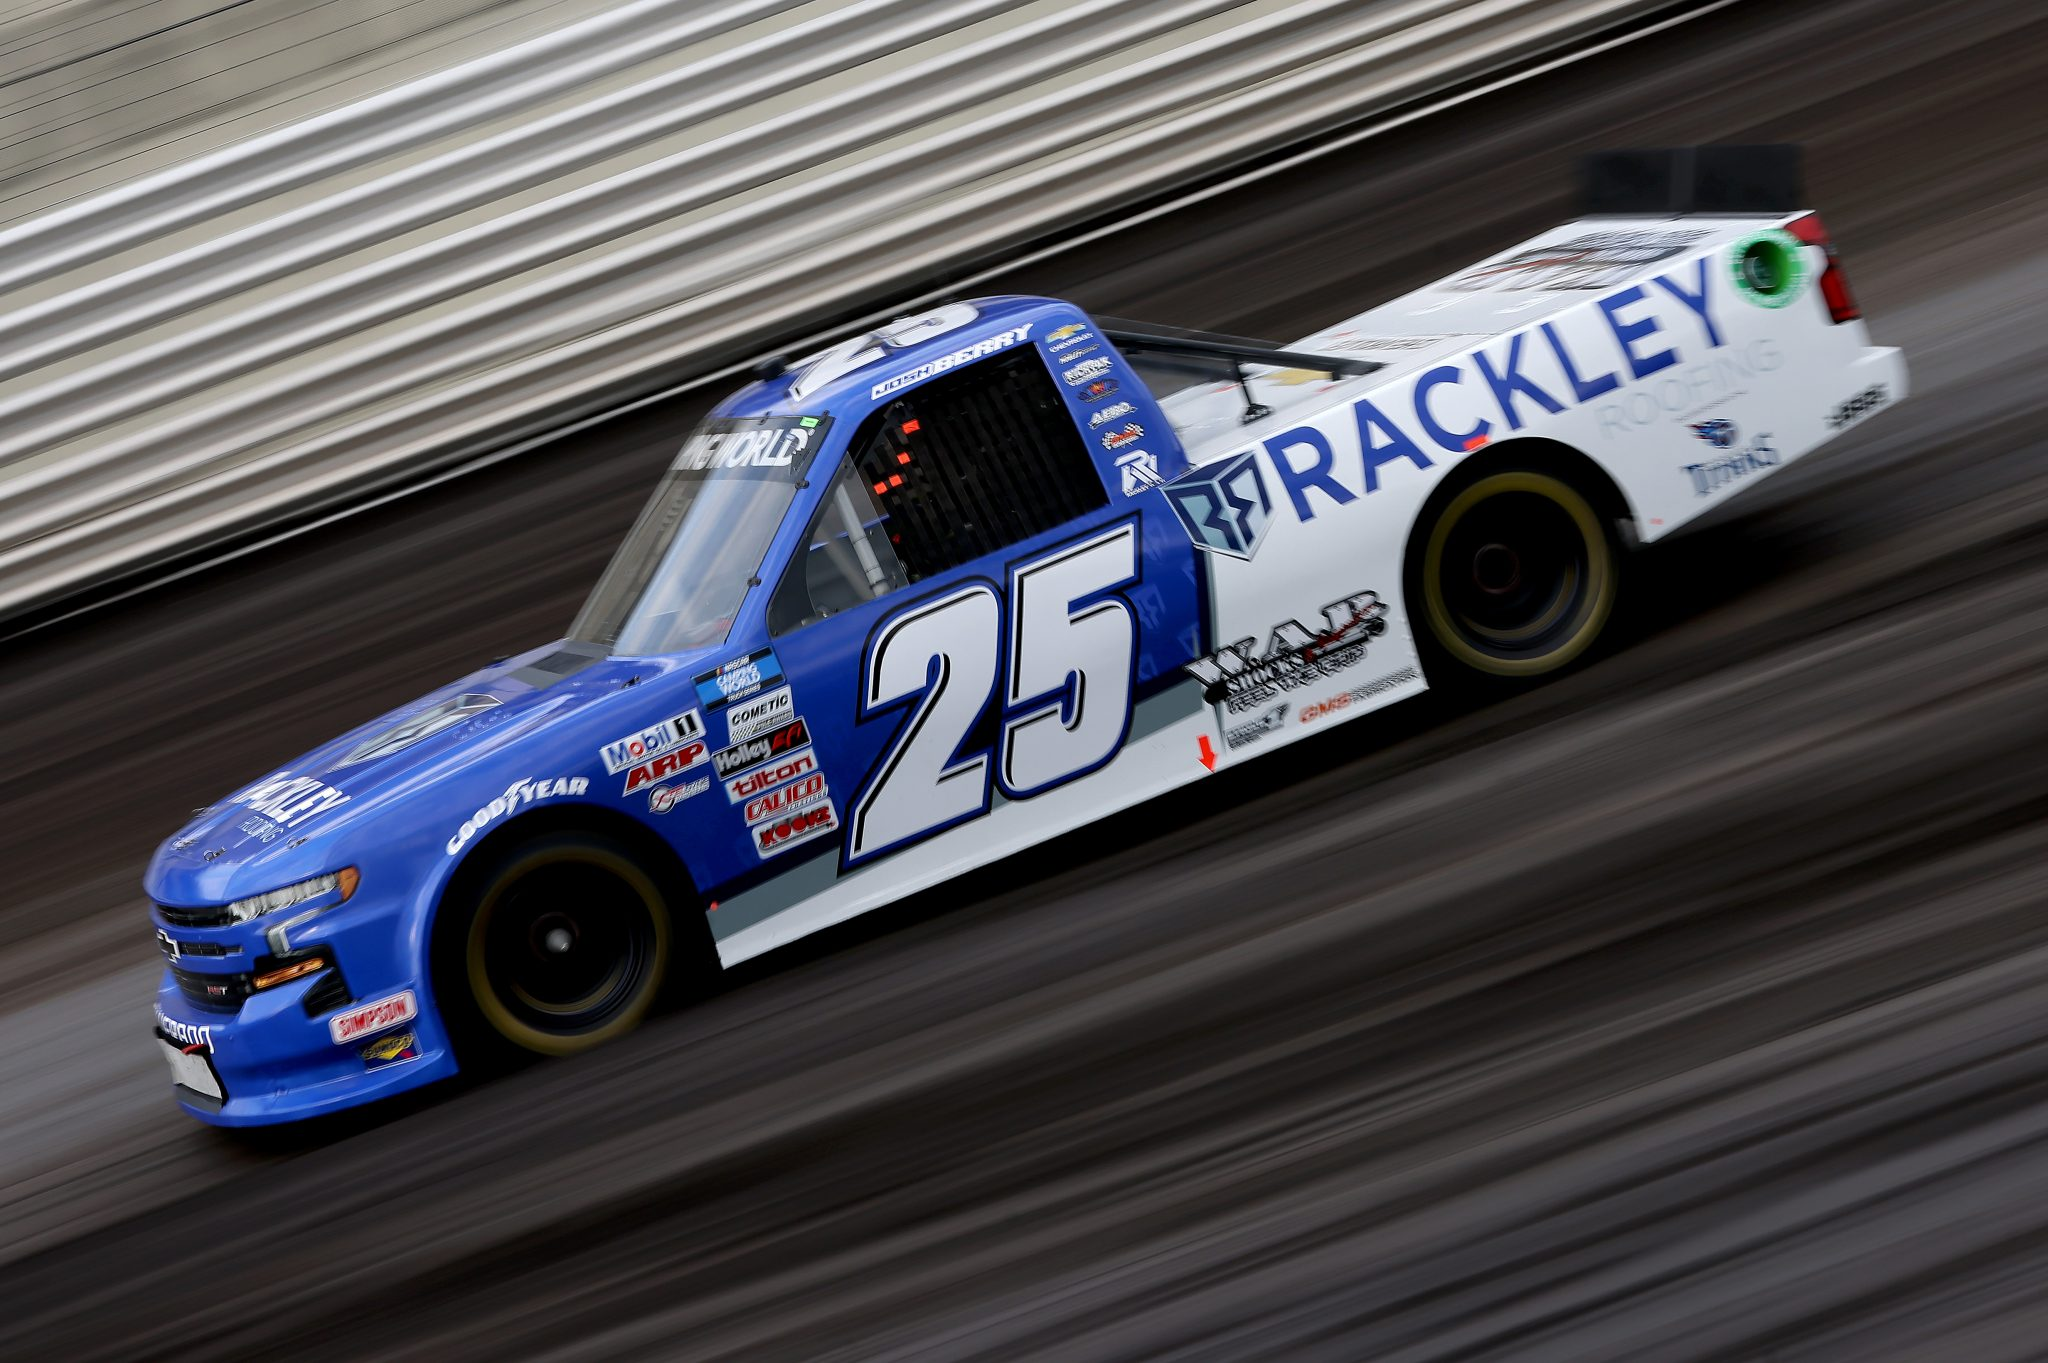 KNOXVILLE, IOWA - JULY 09: Josh Berry, driver of the #25 Rackley Roofing Chevrolet, drives during qualifying for the NASCAR Camping World Truck Series Corn Belt 150 presented by Premier Chevy Dealers at Knoxville Raceway on July 09, 2021 in Knoxville, Iowa. (Photo by James Gilbert/Getty Images) | Getty Images